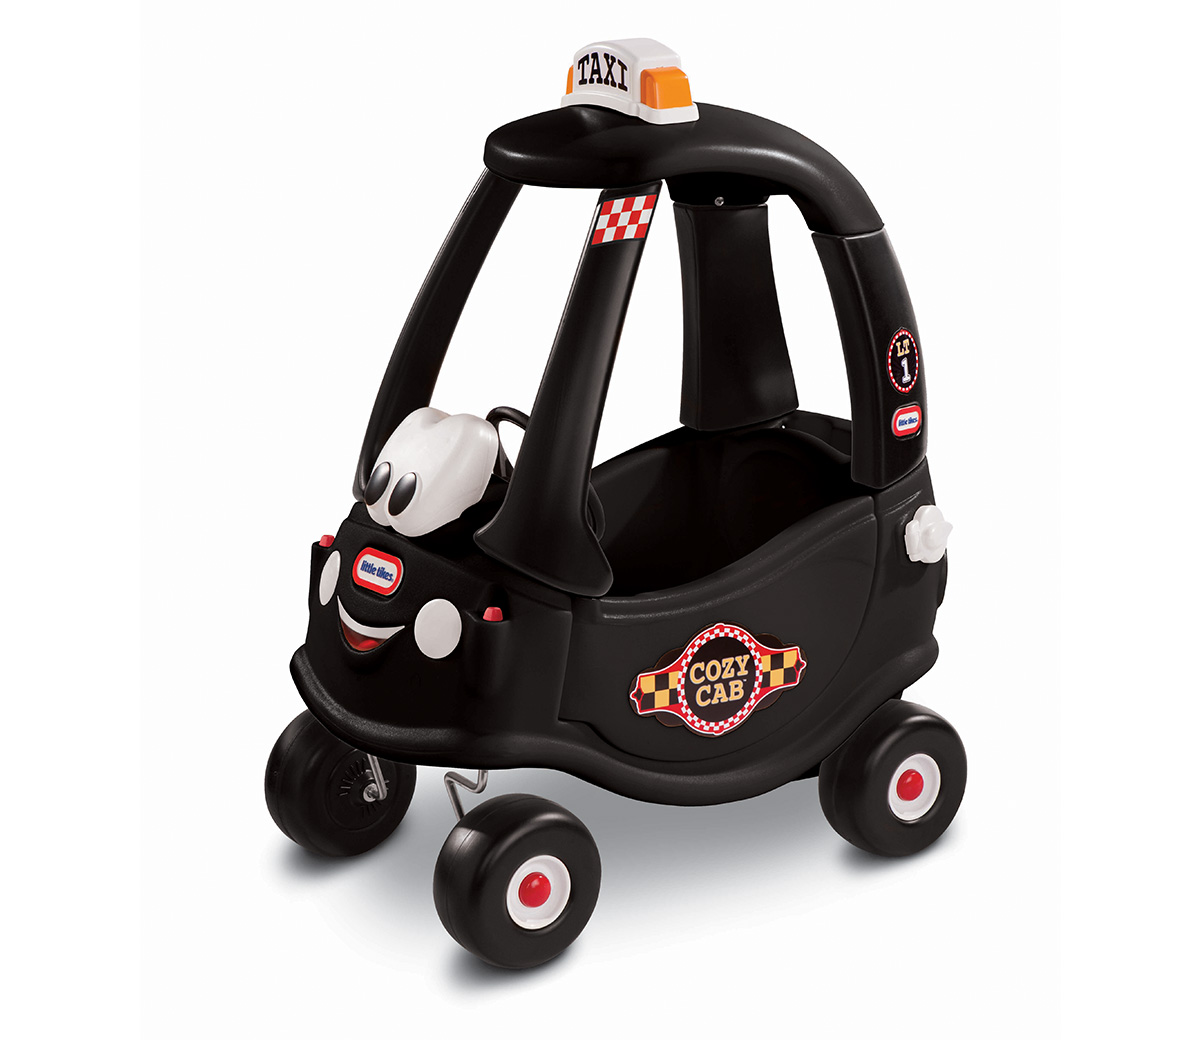 Little Tikes Cozy Coupe Black Cab Little Tikes